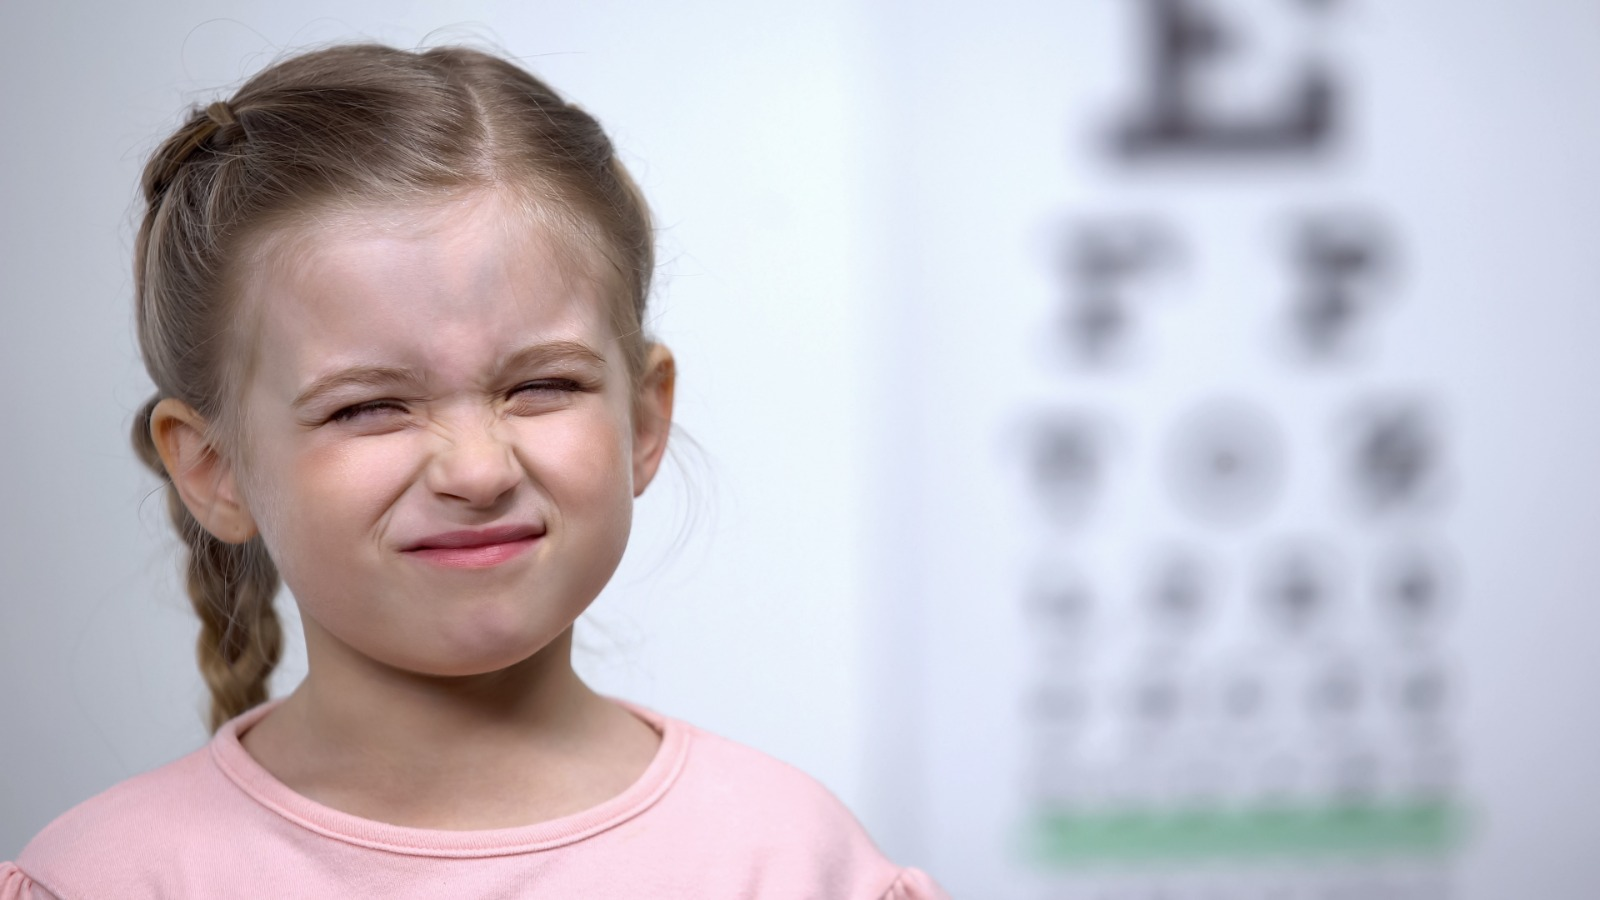 Child frowning because myopia treatment is not working